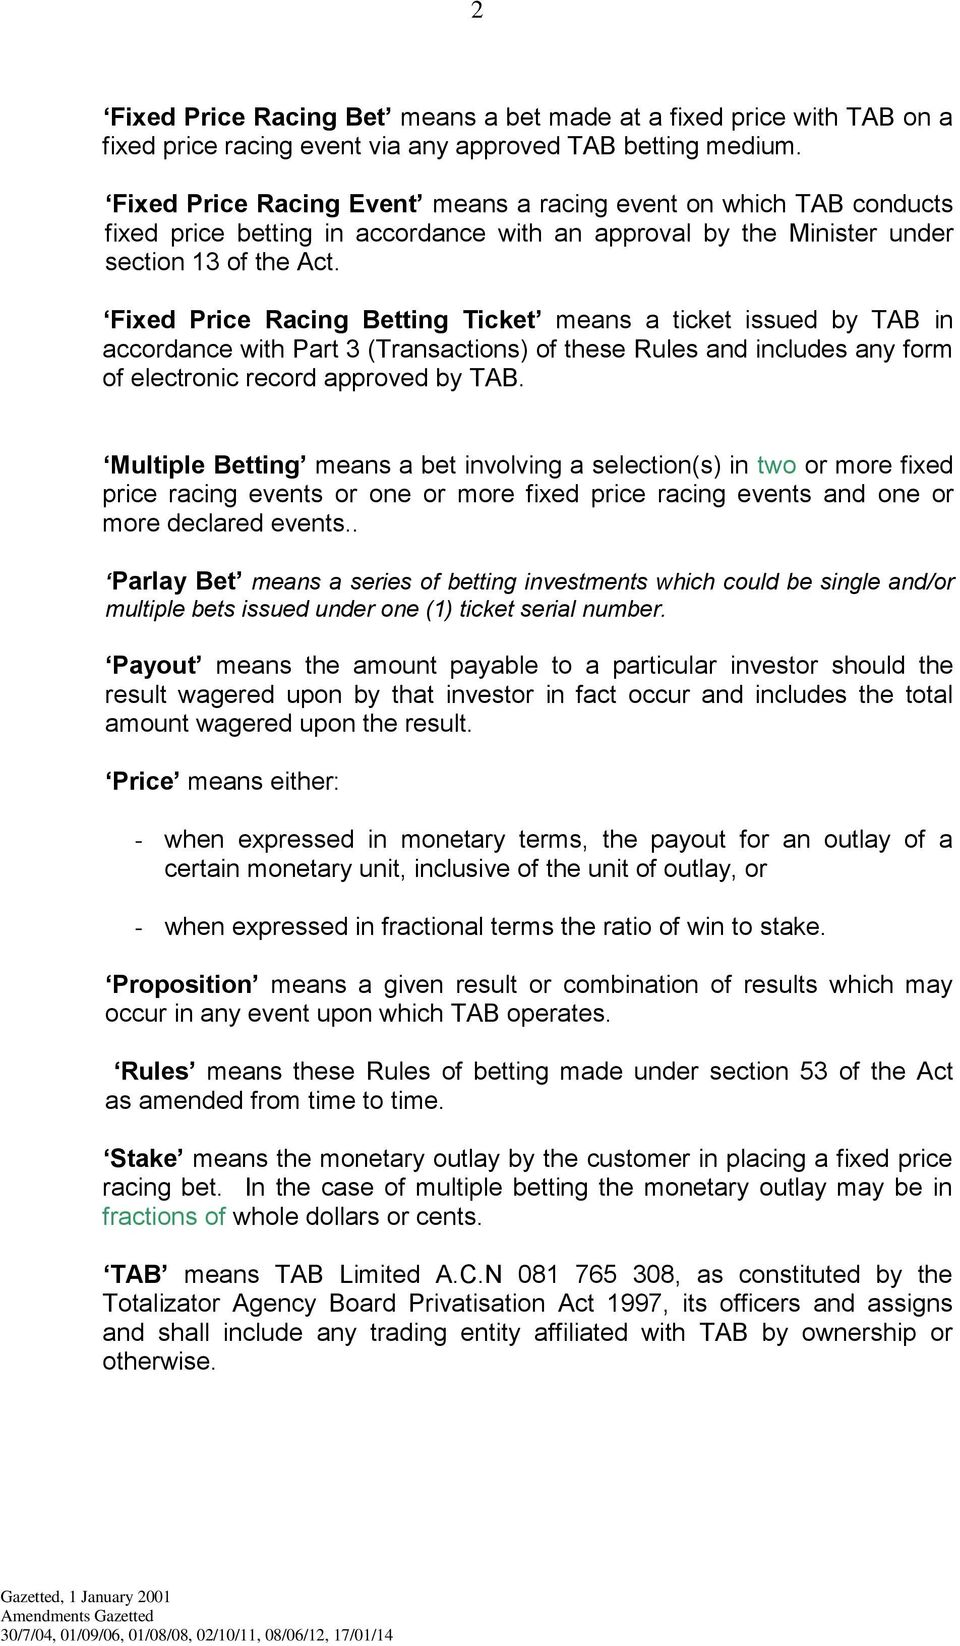 Fixed Price Racing Betting Ticket means a ticket issued by TAB in accordance with Part 3 (Transactions) of these Rules and includes any form of electronic record approved by TAB.